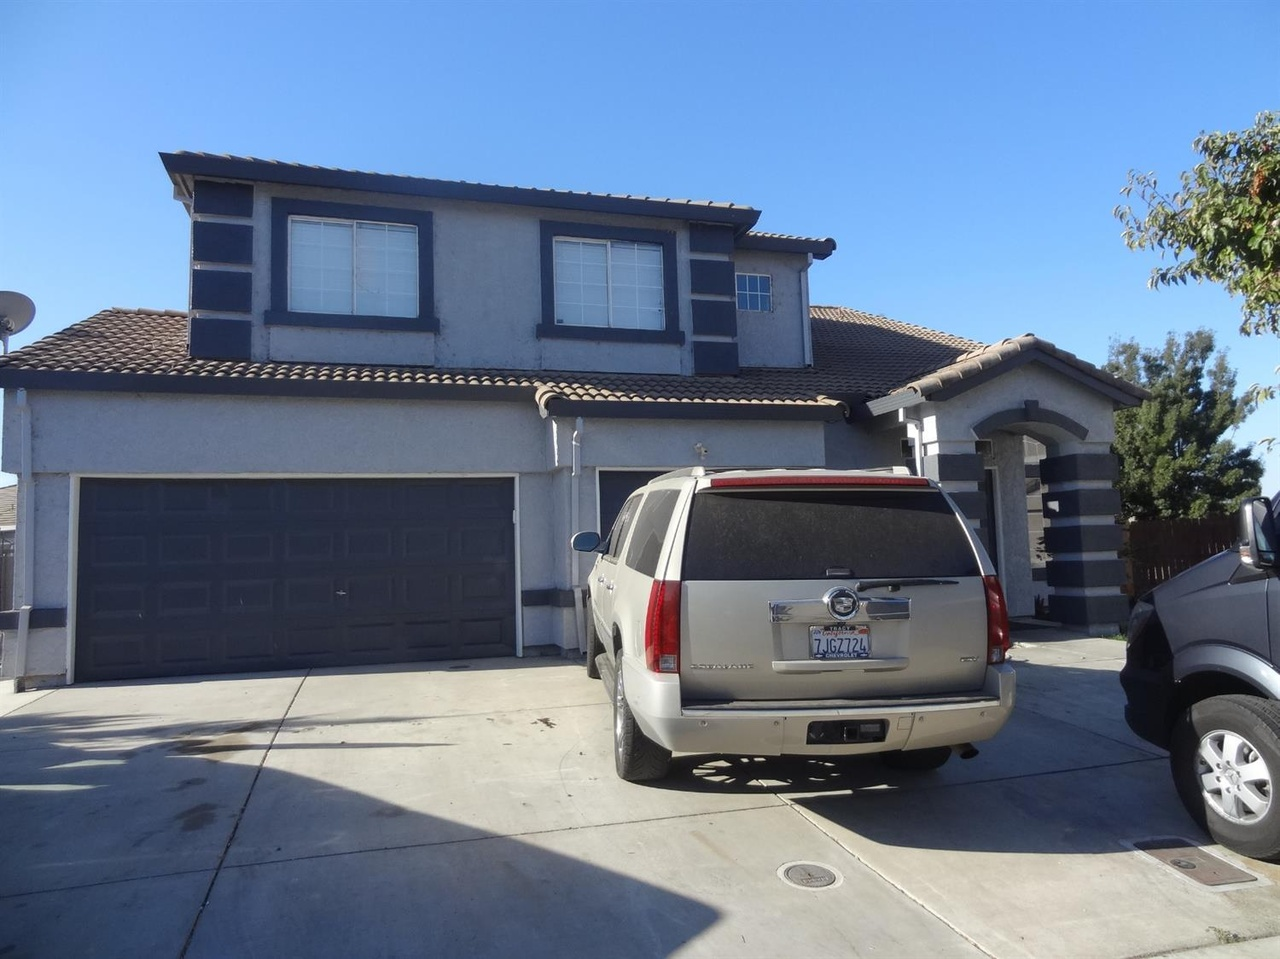 2551 STERN Pl, Stockton, CA 95206 | MLS# 17063698 | Redfin